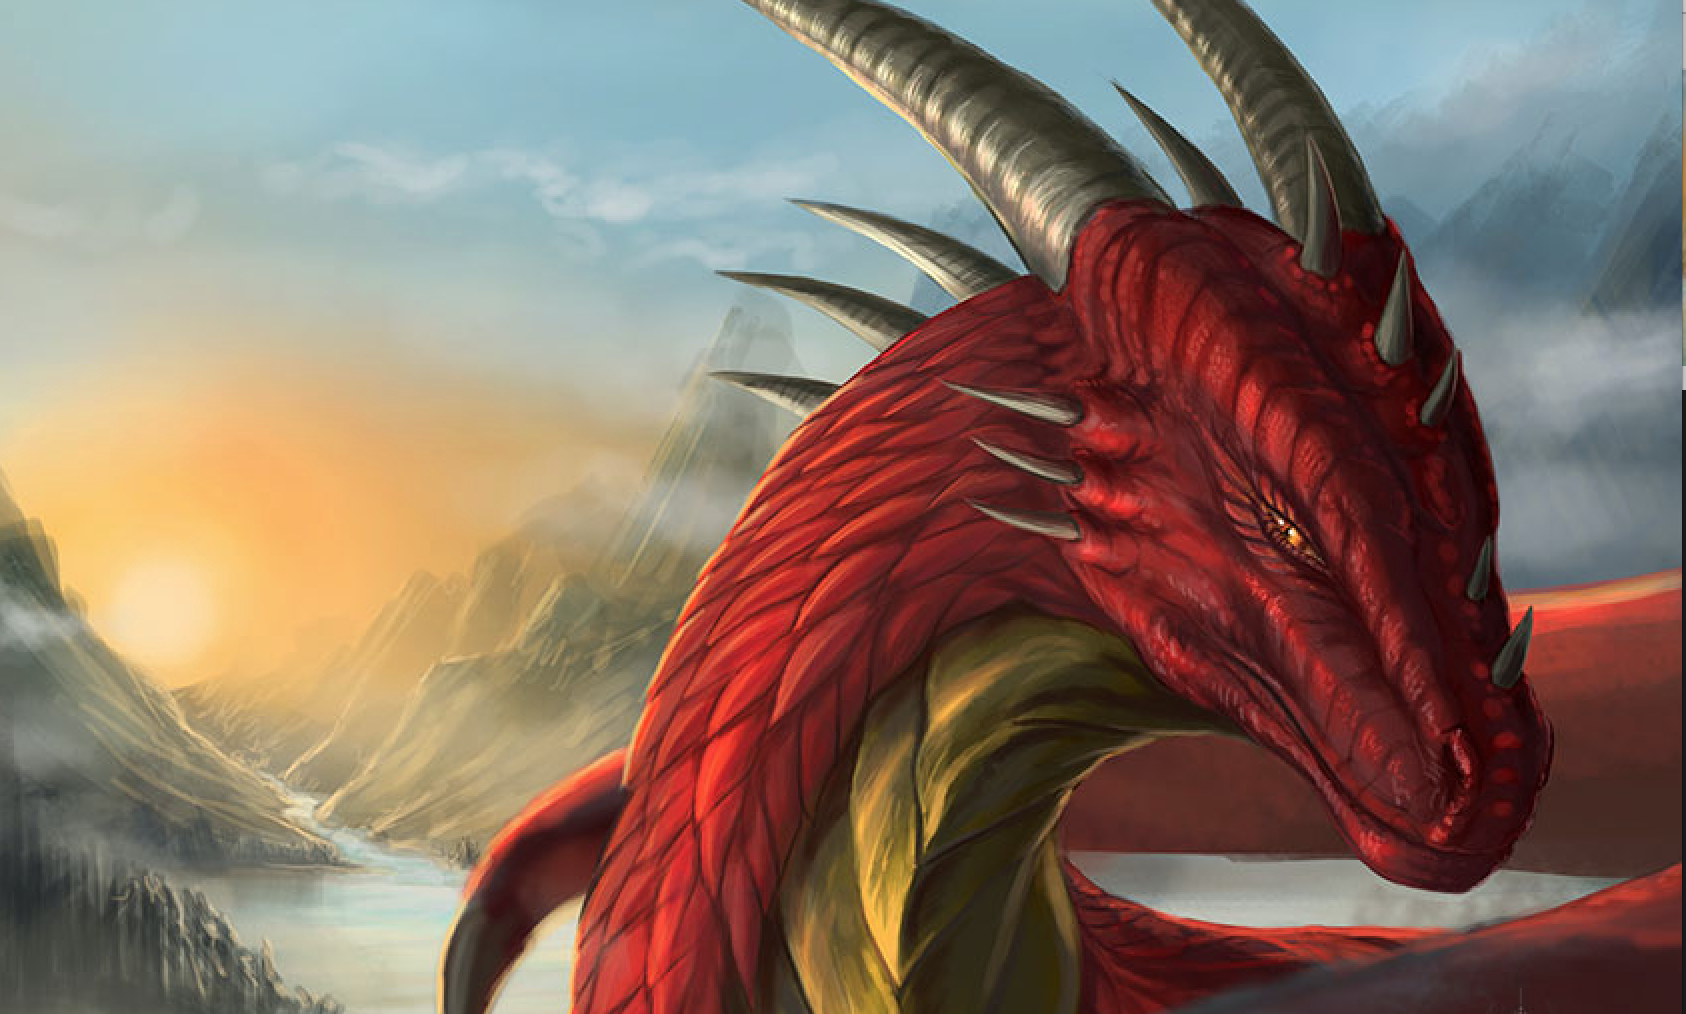 Red Fire Dragon: Introducing The Red Dragon